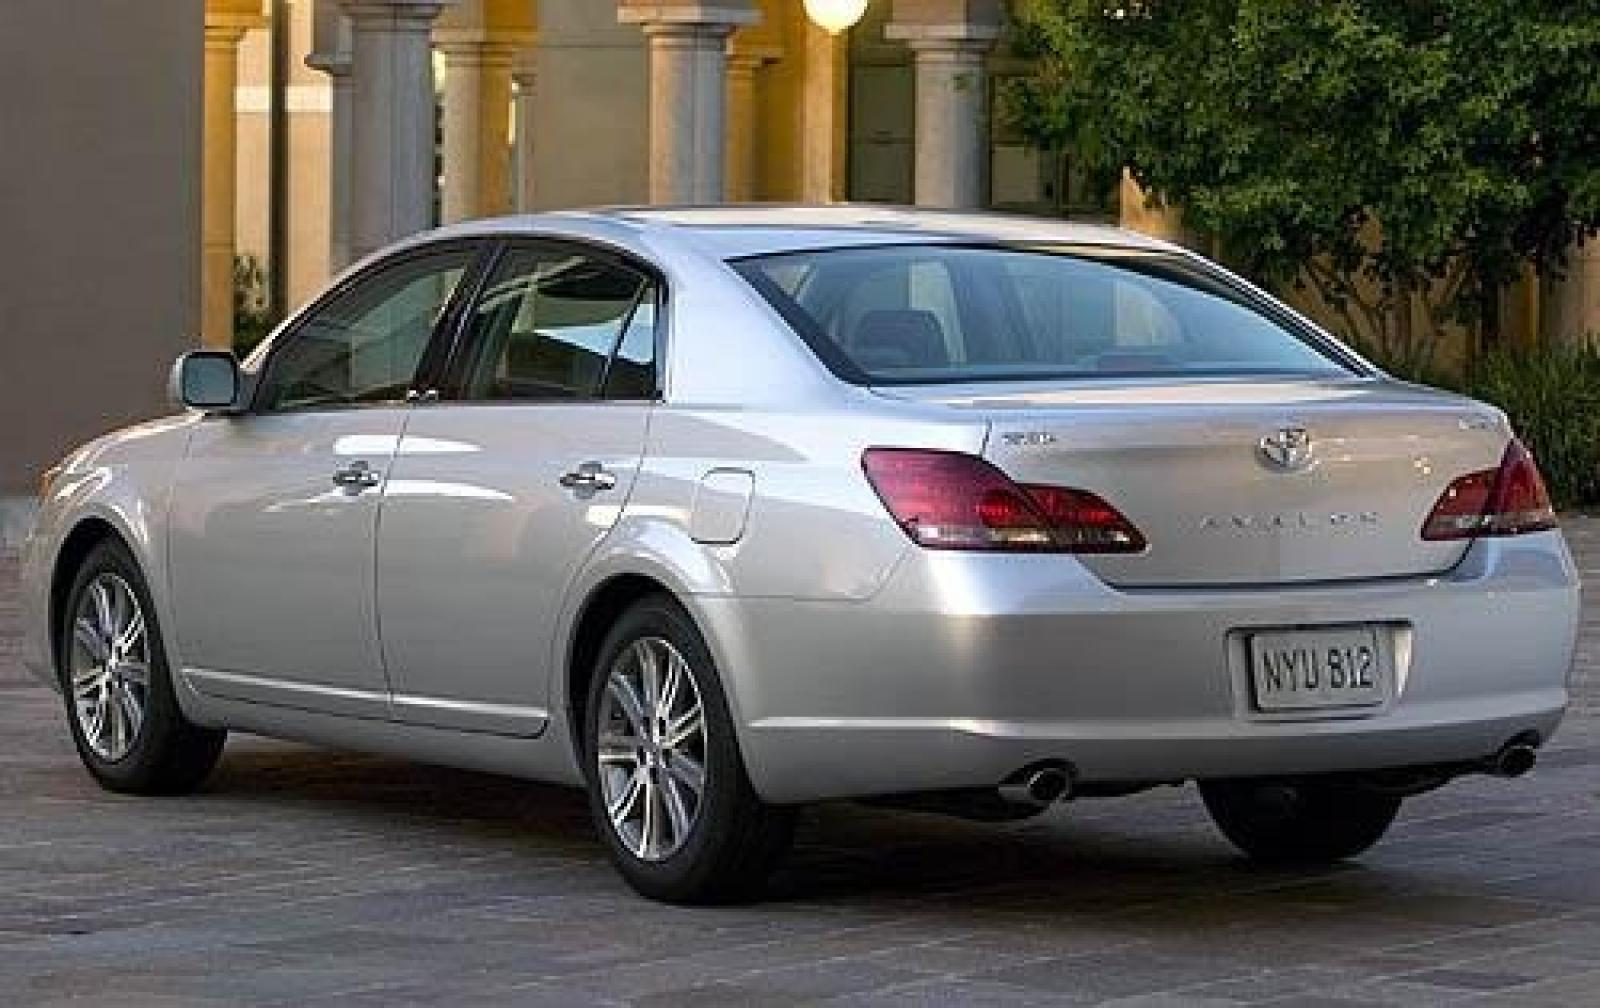 2010 toyota avalon information and photos zombiedrive. Black Bedroom Furniture Sets. Home Design Ideas